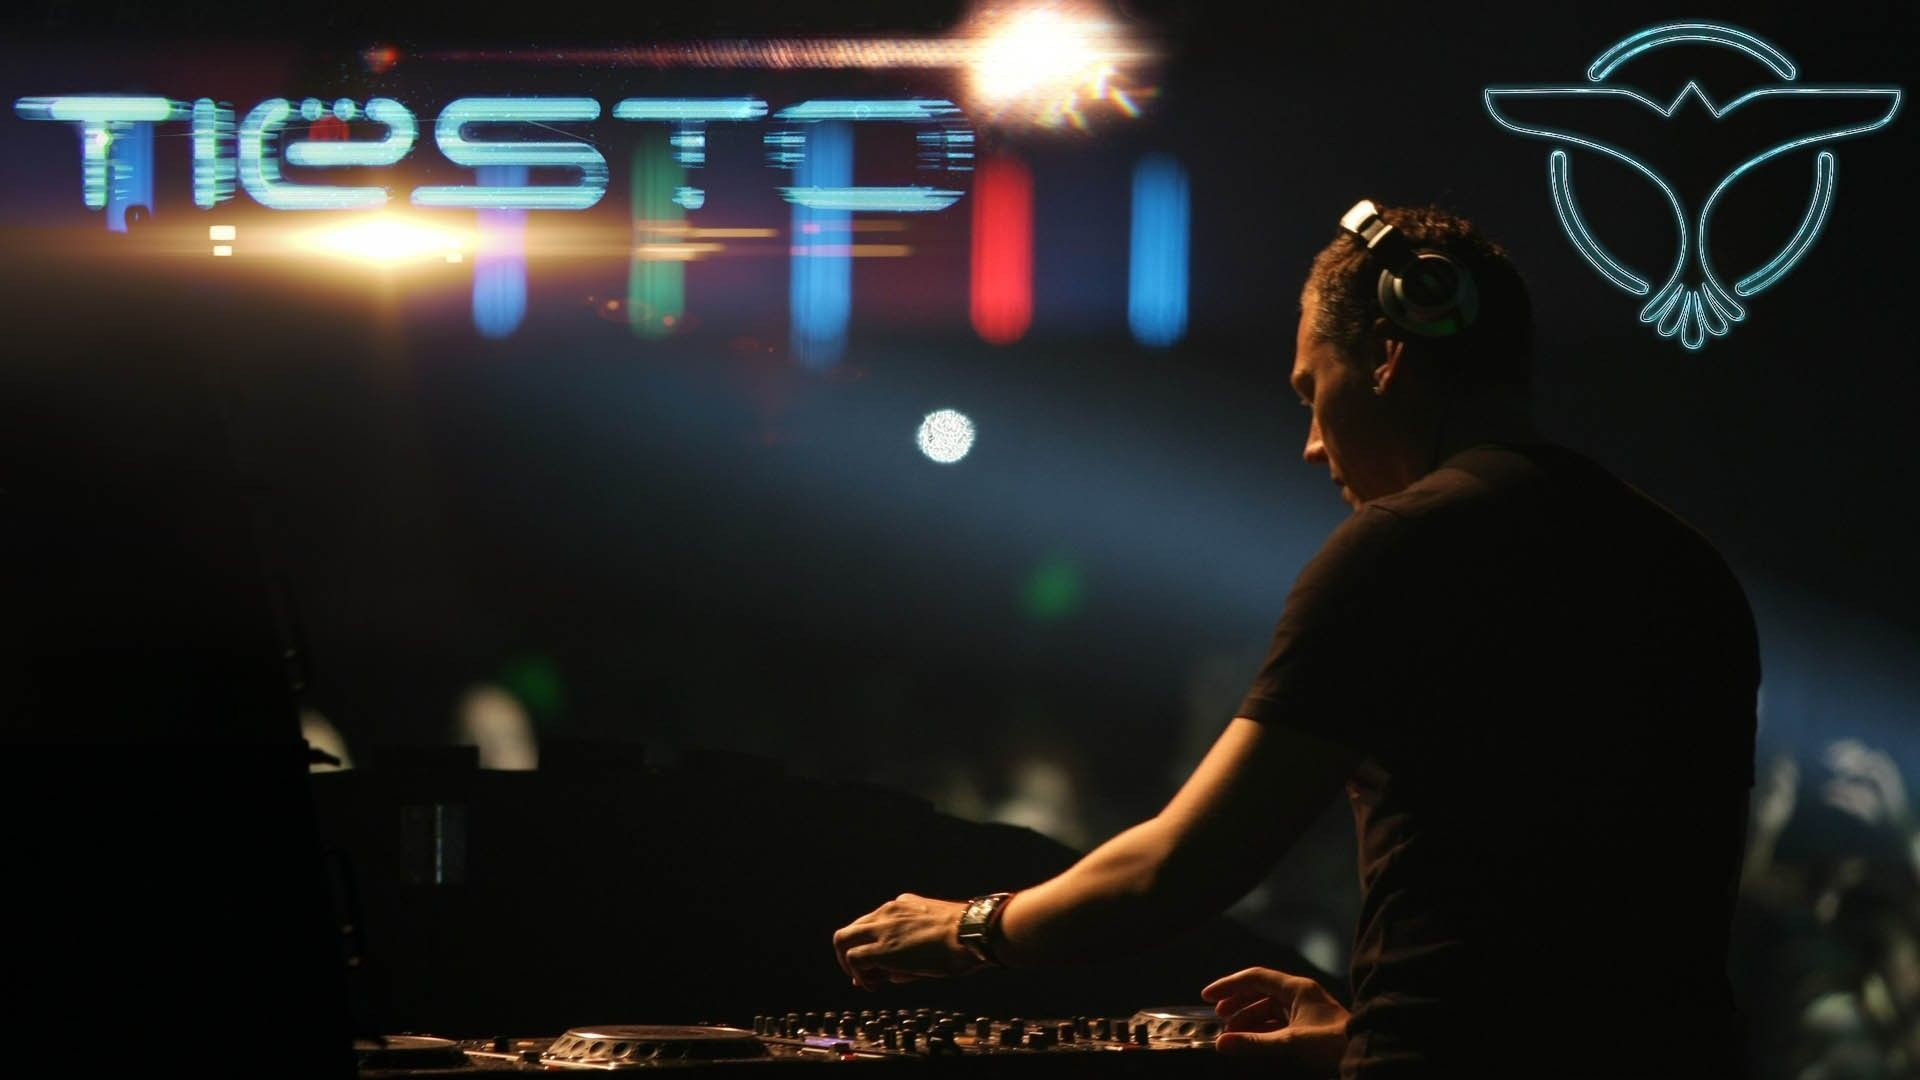 Res: 1920x1080, Tiesto Club Life Wallpaper